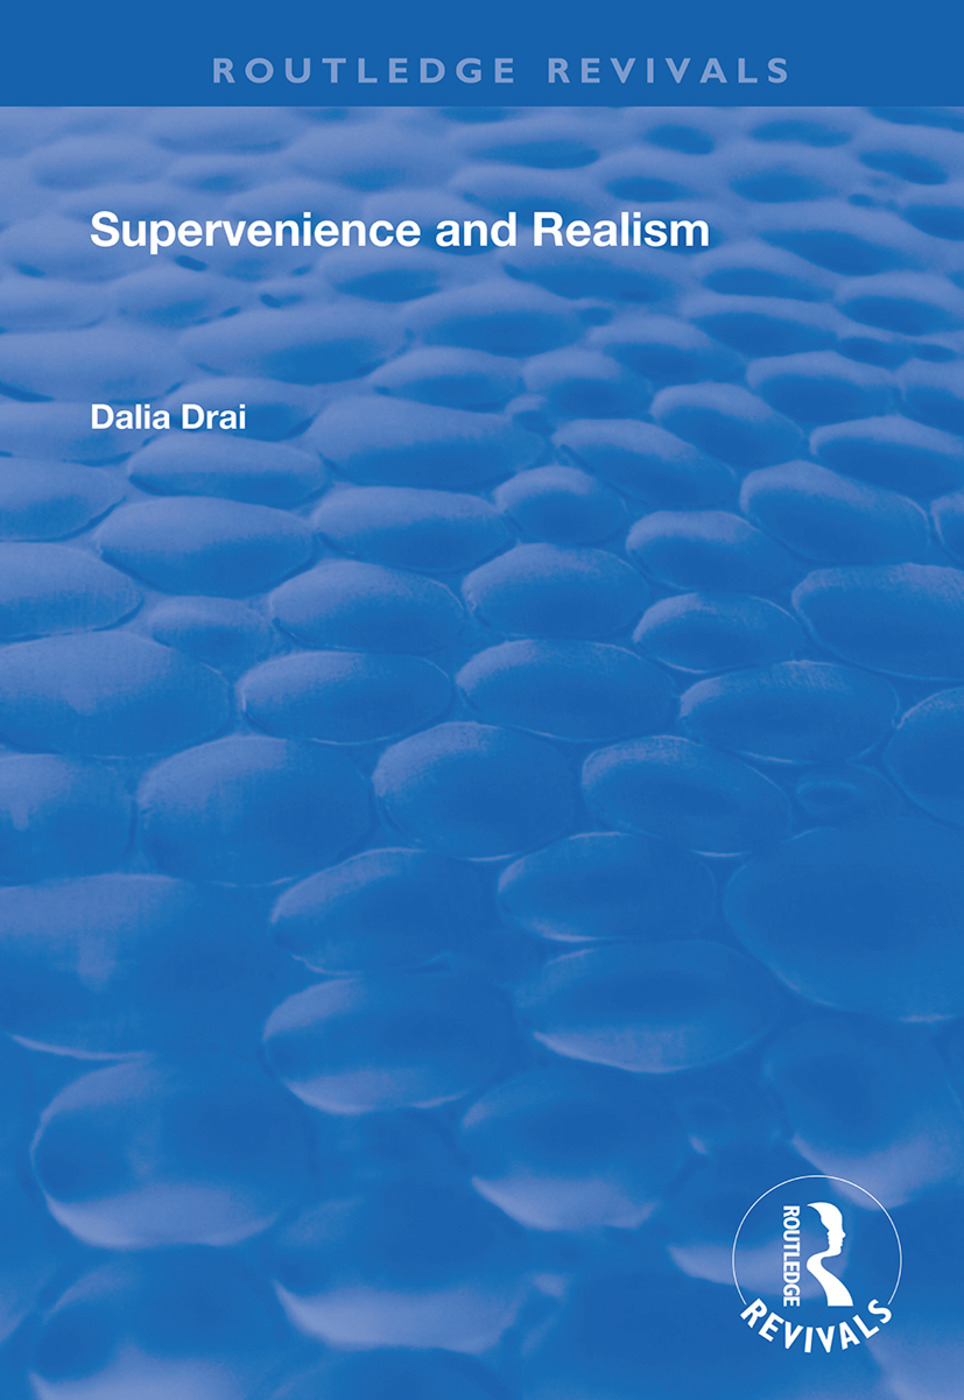 Supervenience and Realism